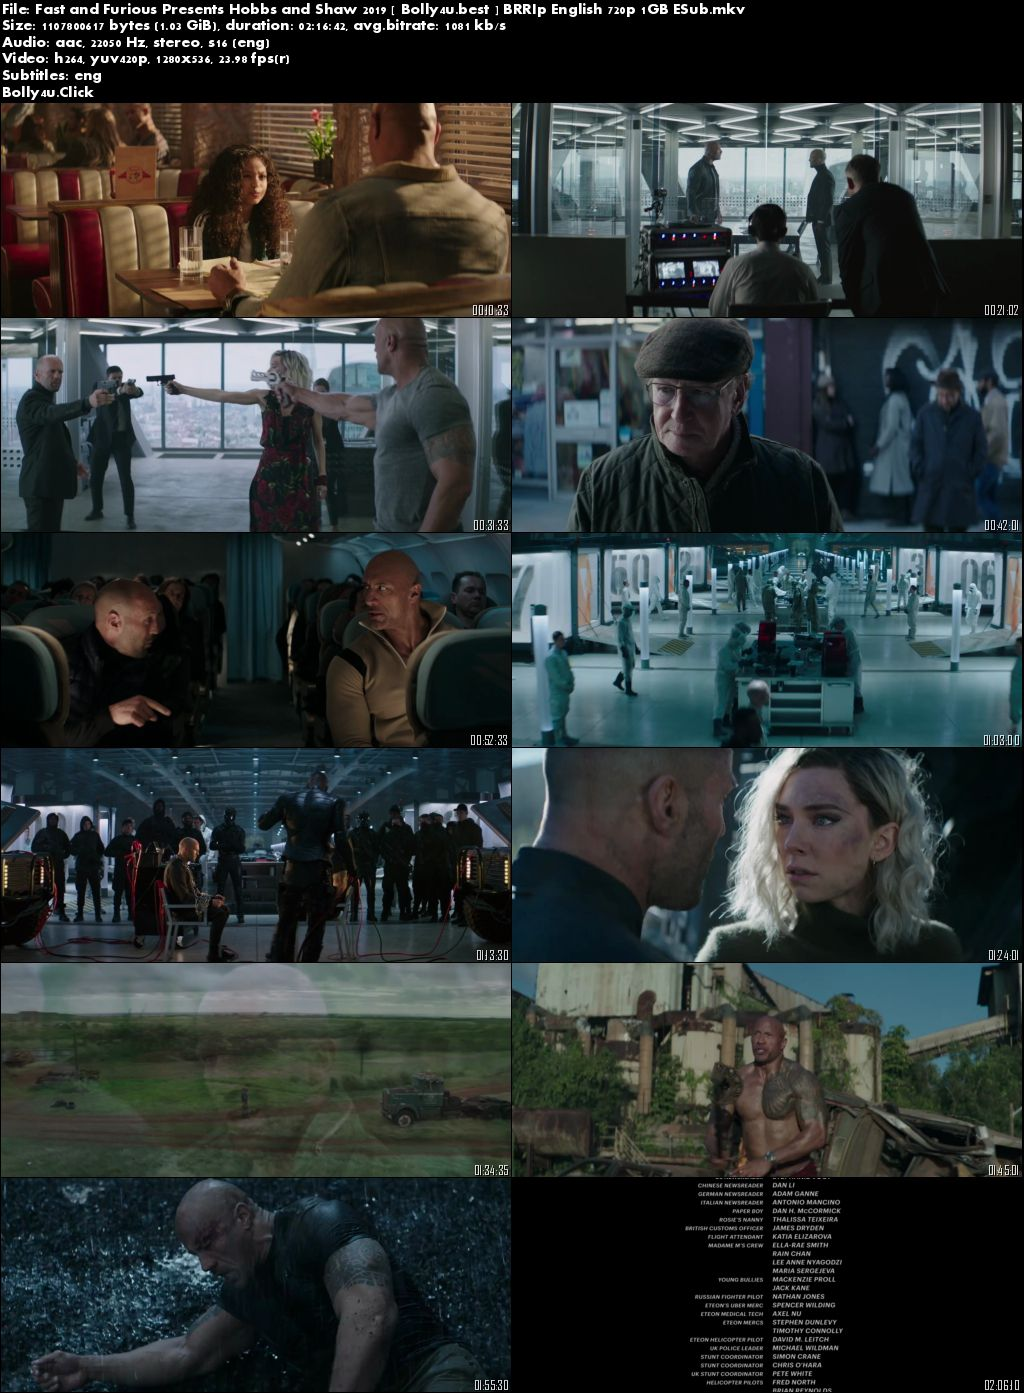 Fast and Furious Presents Hobbs and Shaw 2019 BRRip 1GB English 720p ESub Download